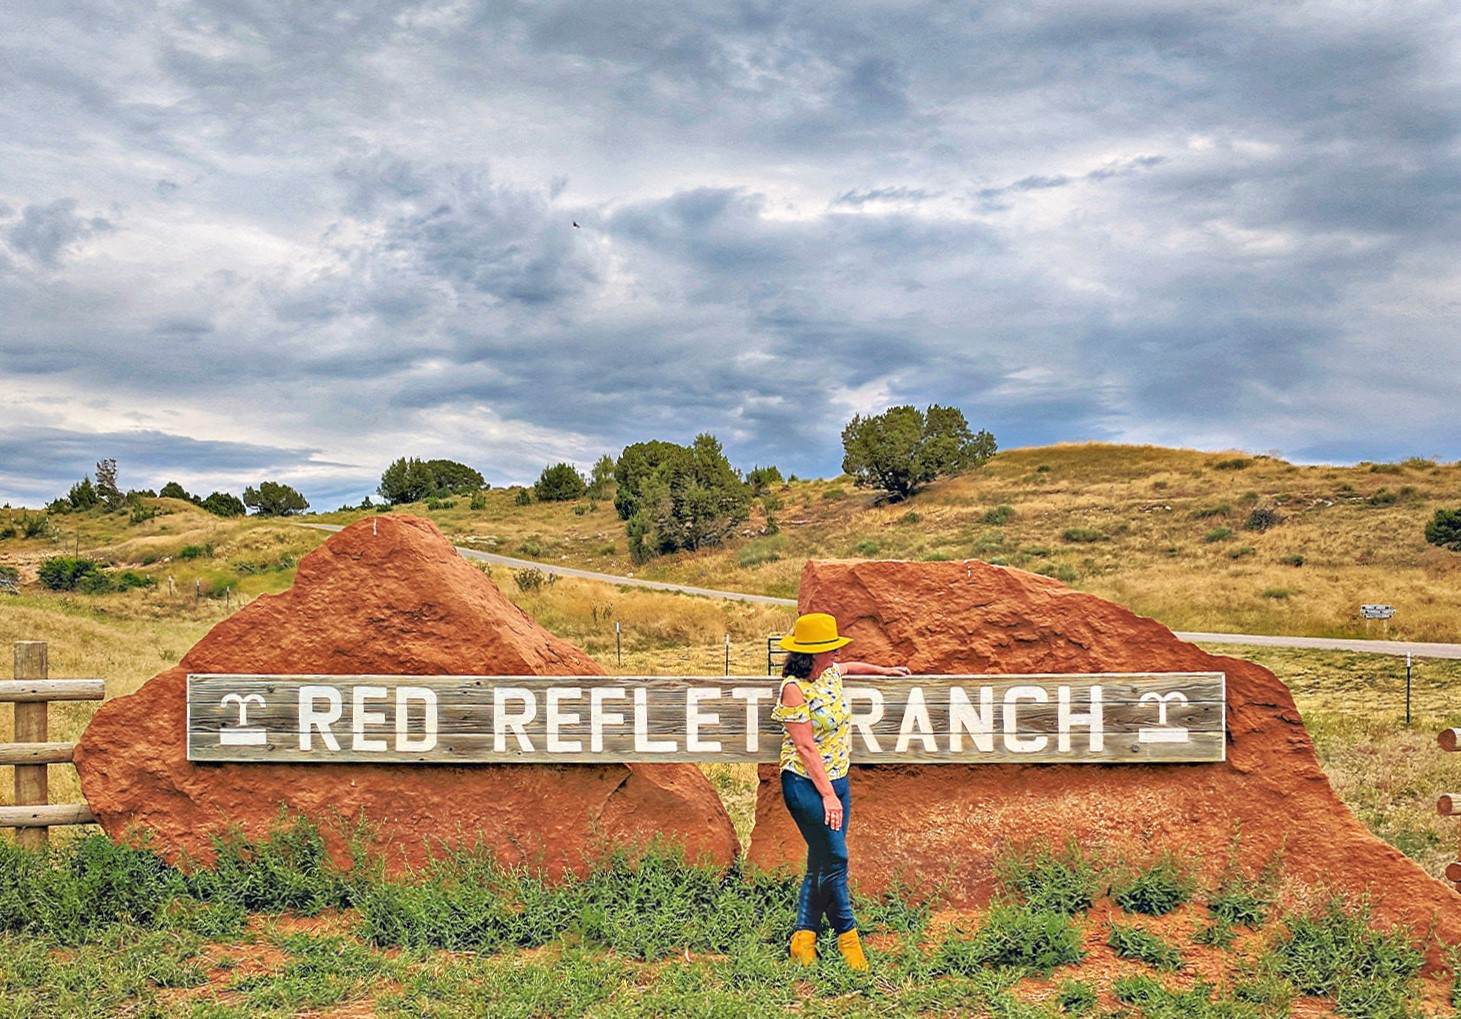 Dude ranch vacations at its best - Red Reflet Ranch in Wyoming.